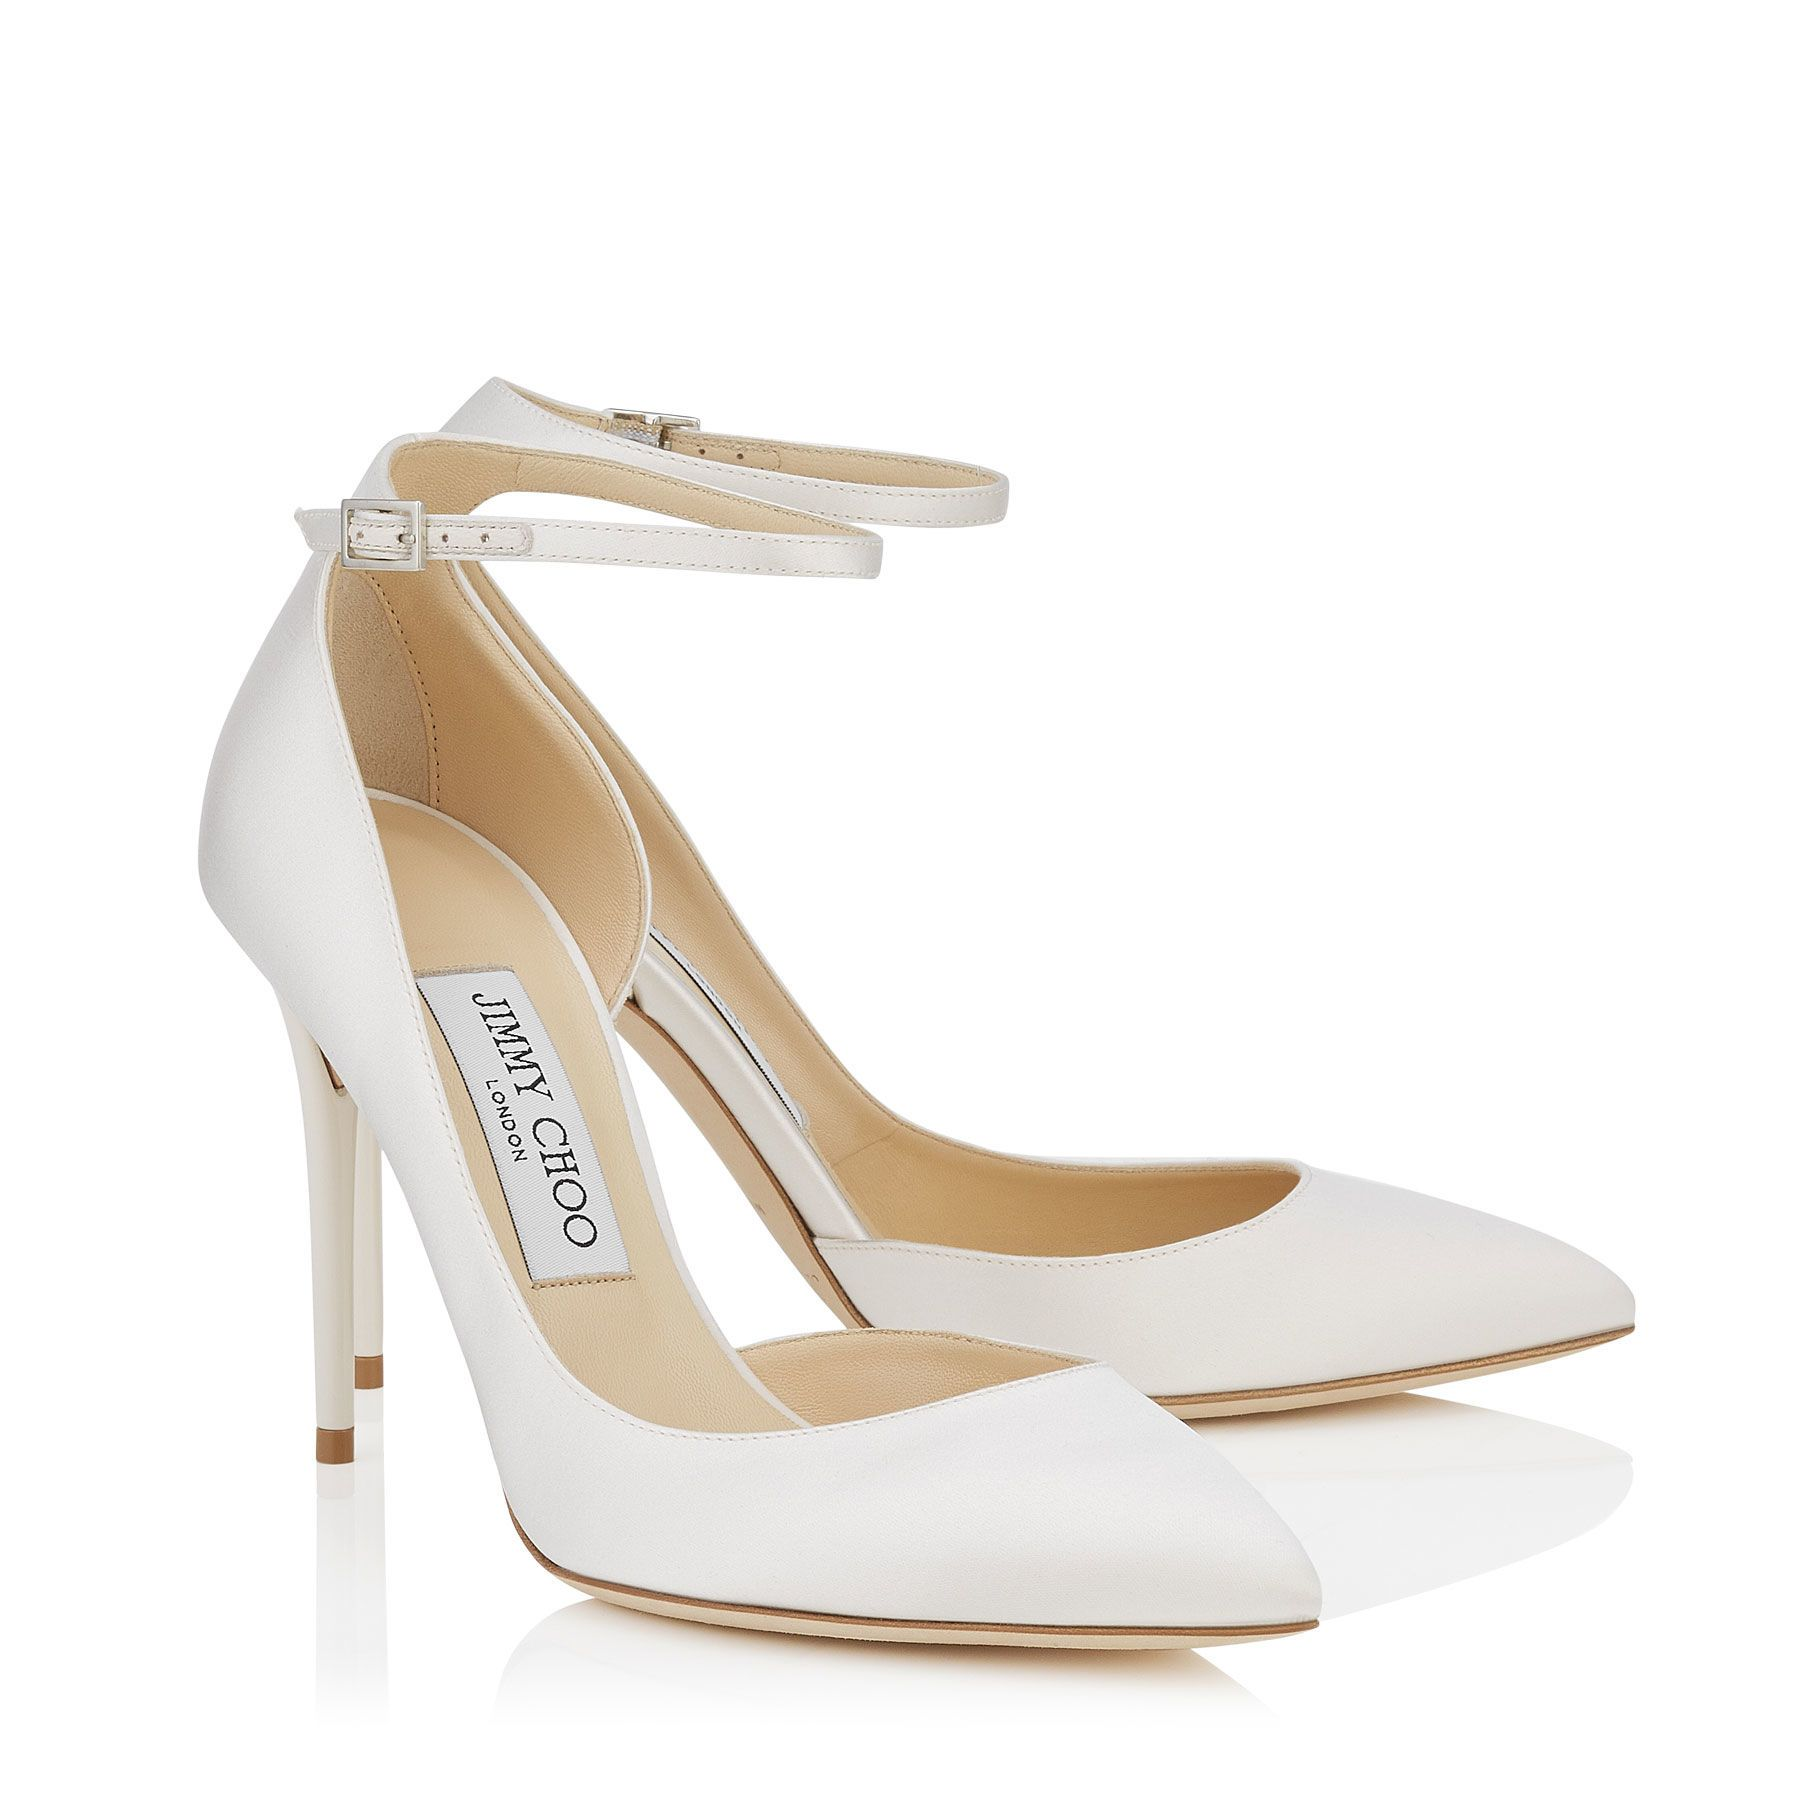 Lucy 100 embellished pumps - White Jimmy Choo London tIeJFAzv98